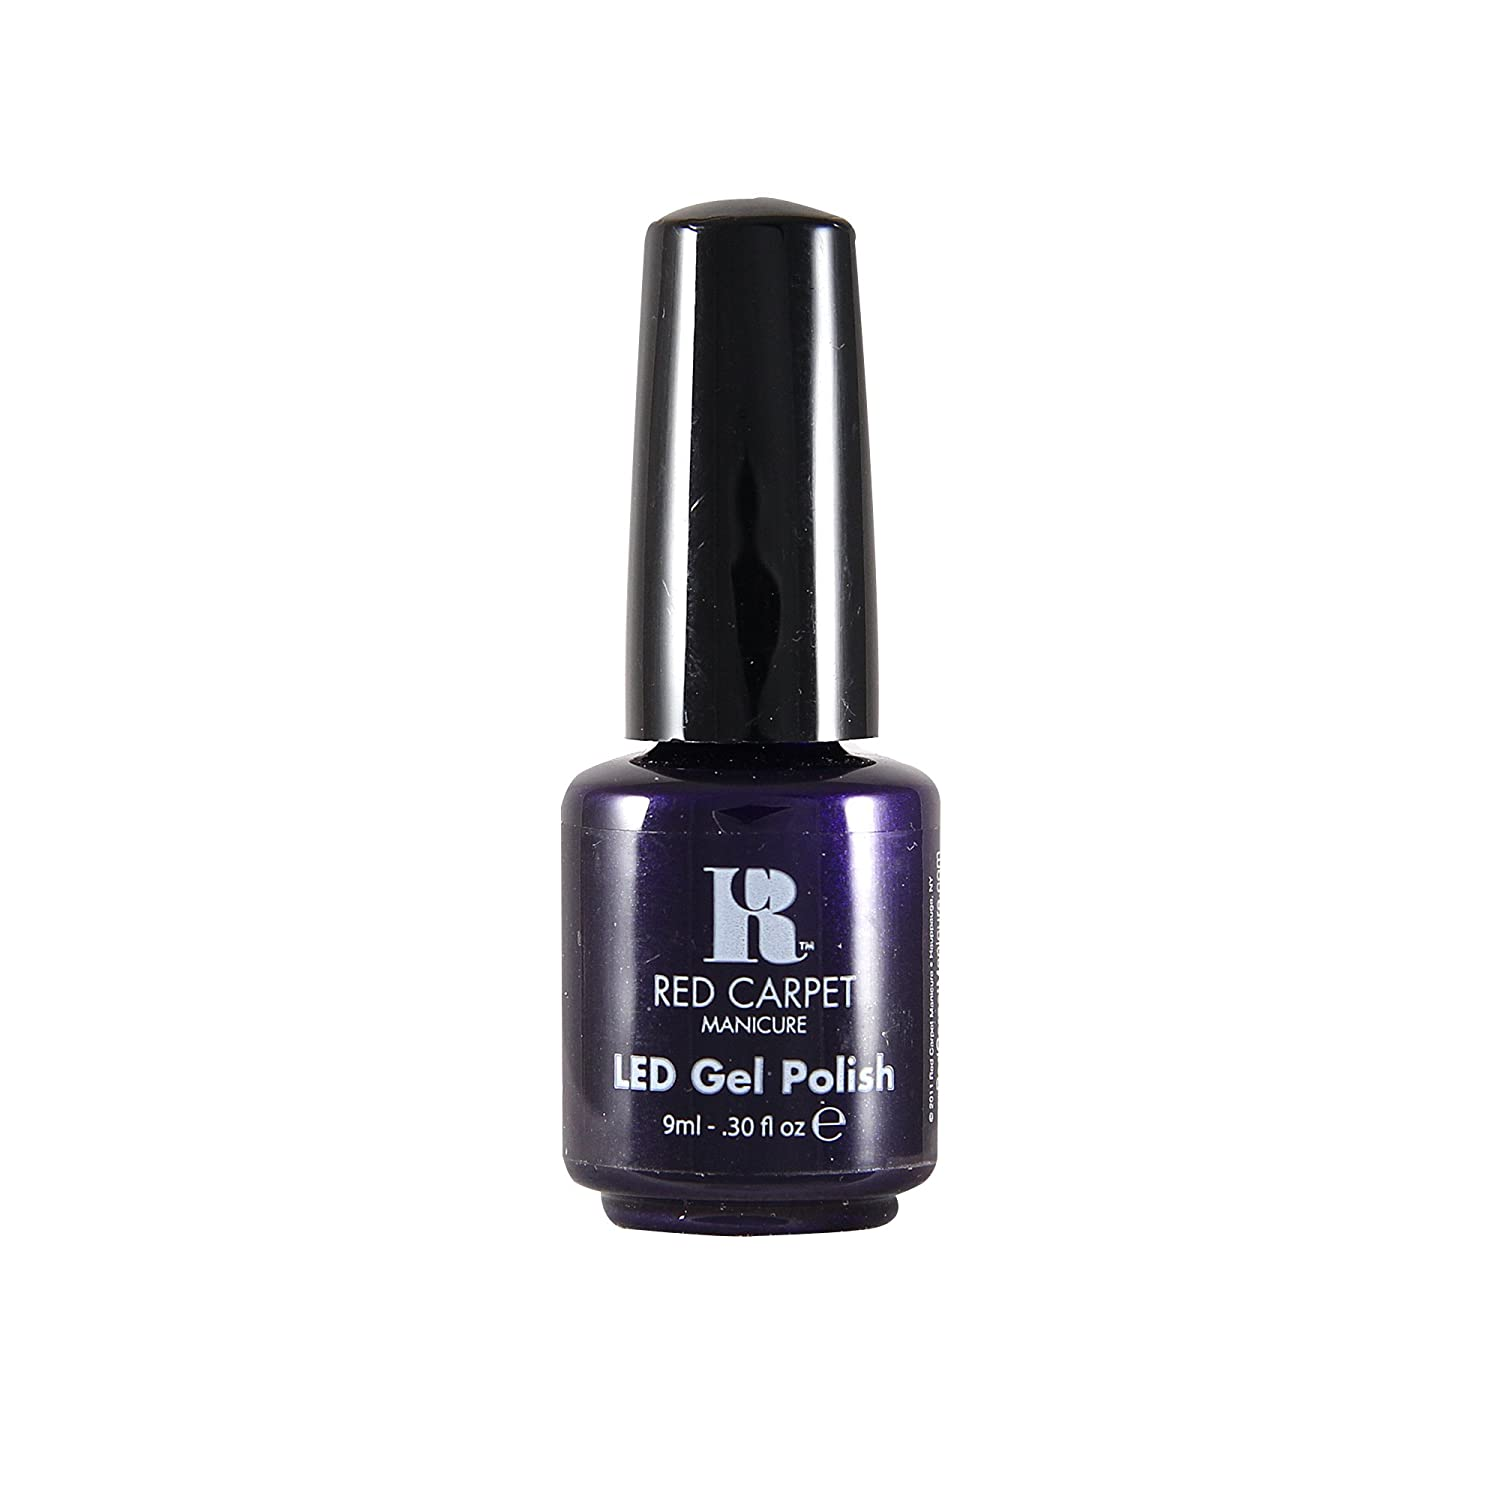 Red Carpet Manicure LED Gel Polish, Nominated For 9 ml 20125